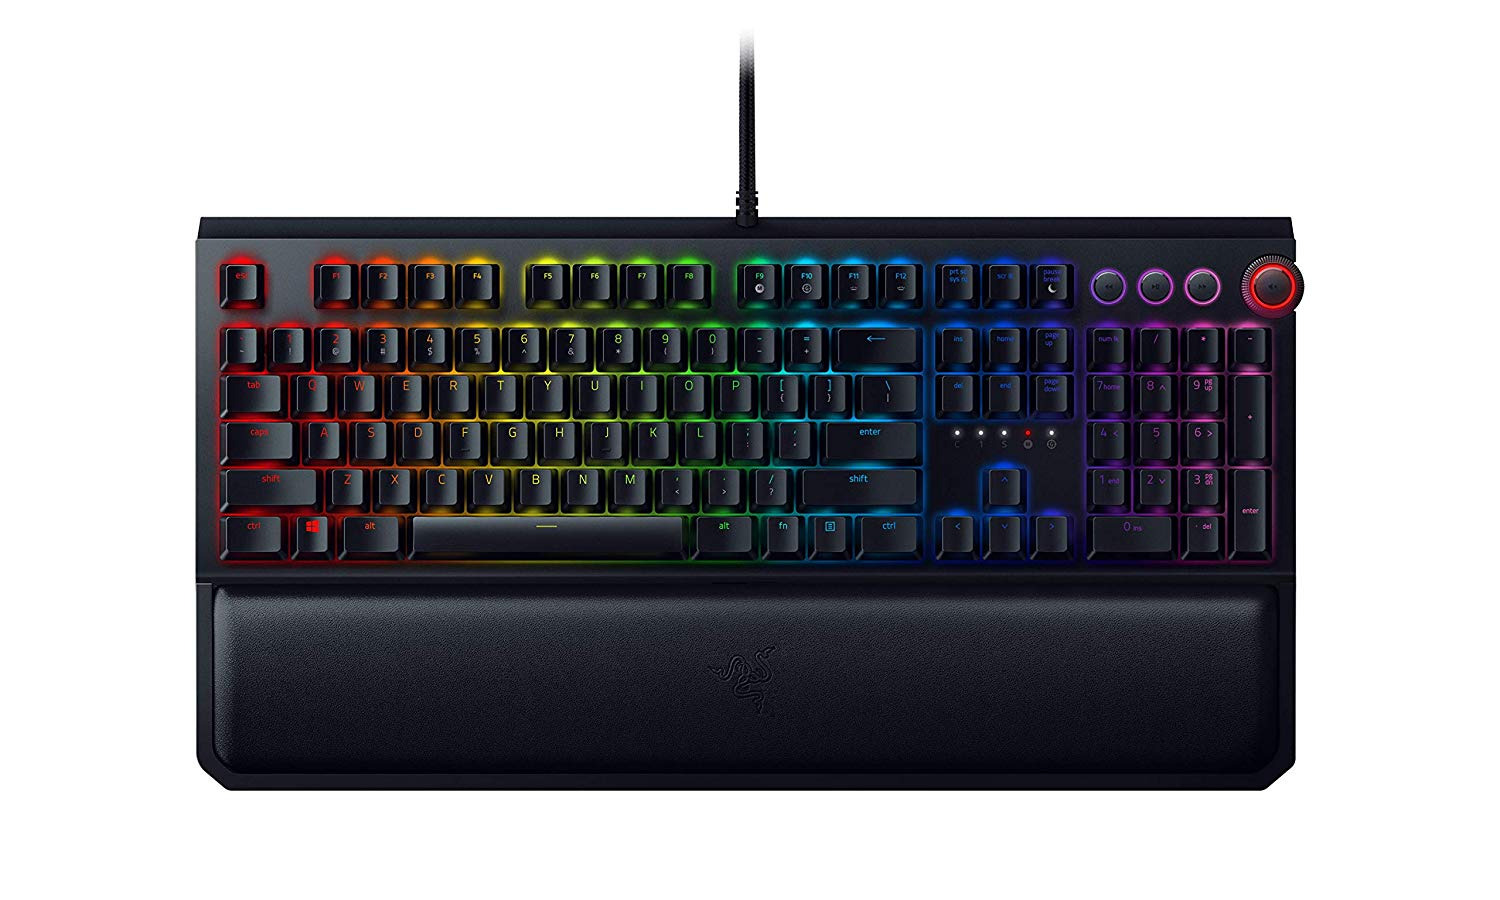 Razer BlackWidow Elite: Esports Gaming Keyboard - Multi-Function Digital Dial with Dedicated Media Controls - Ergonomic Wrist Rest - Razer Yellow Mechanical Switches (Linear and Silent)